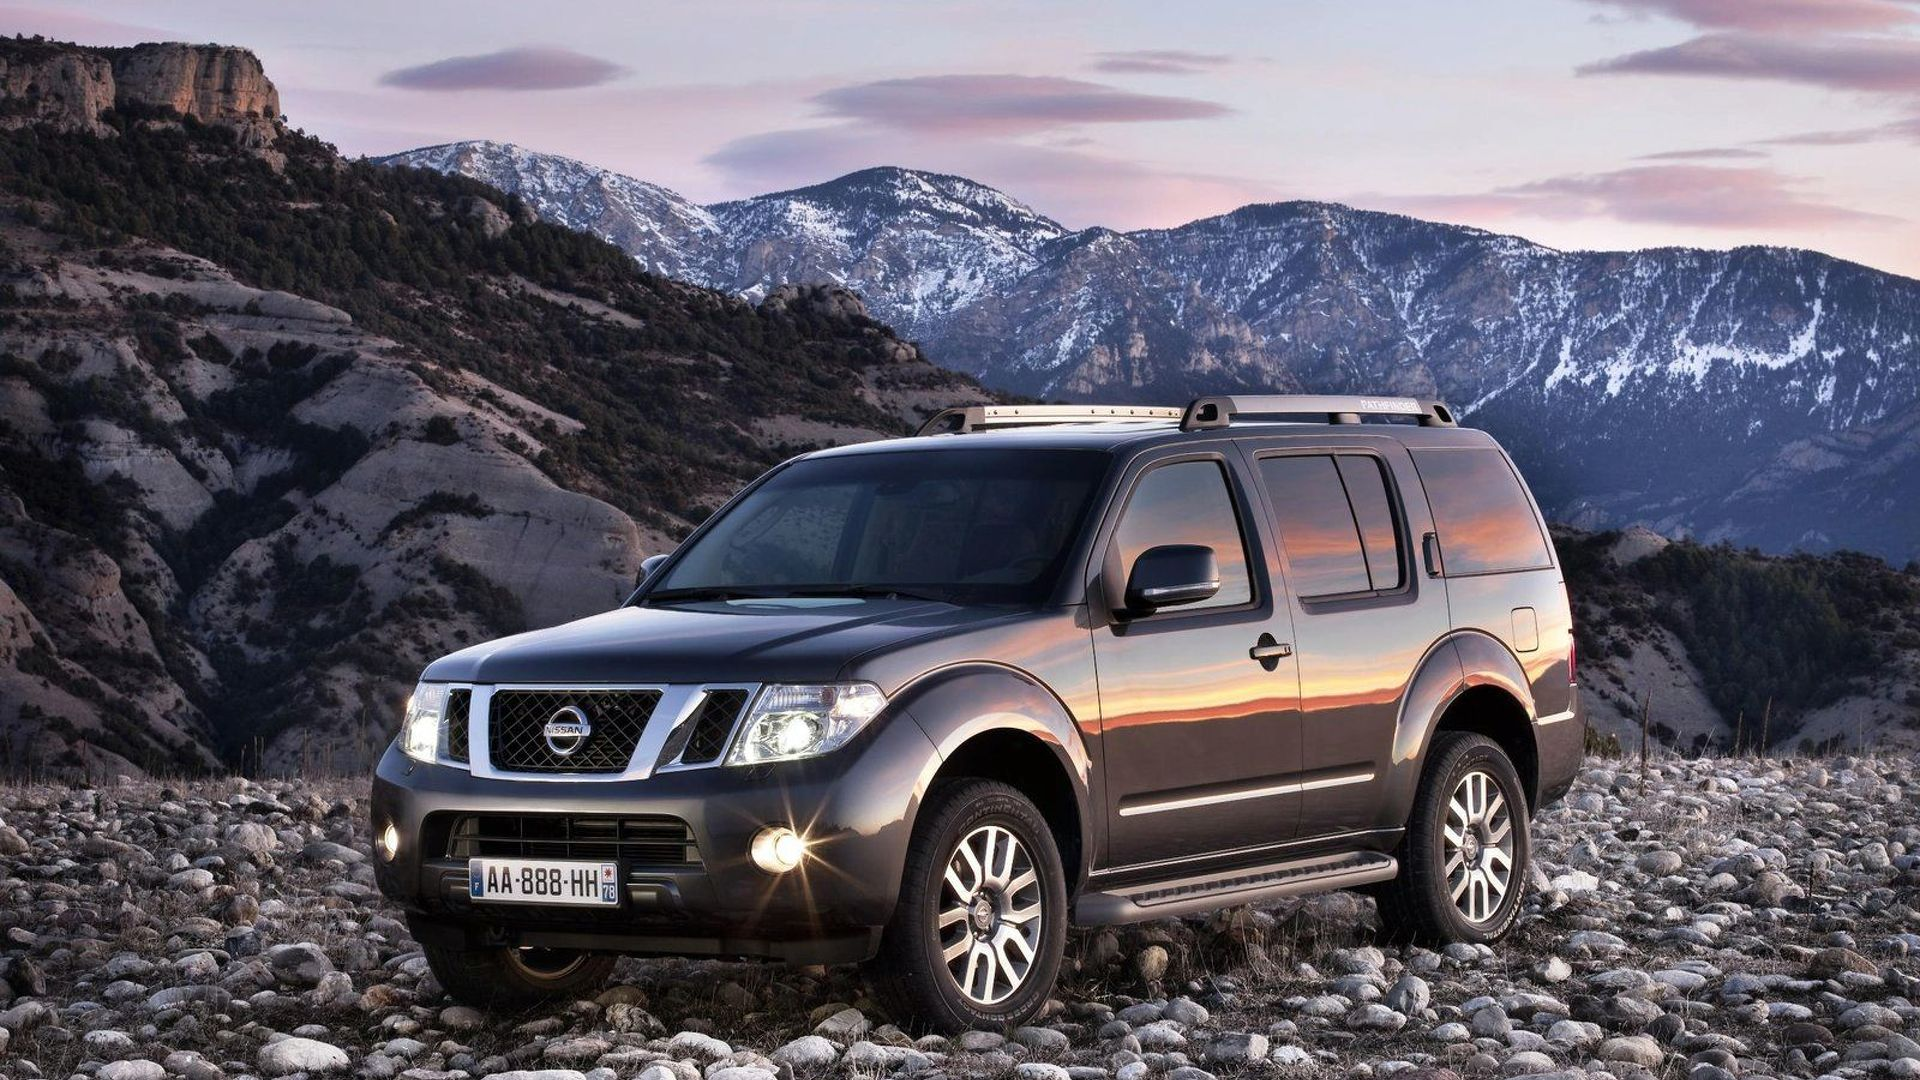 2011 Nissan Navara and Pathfinder Facelifts Announced - Launch in Geneva